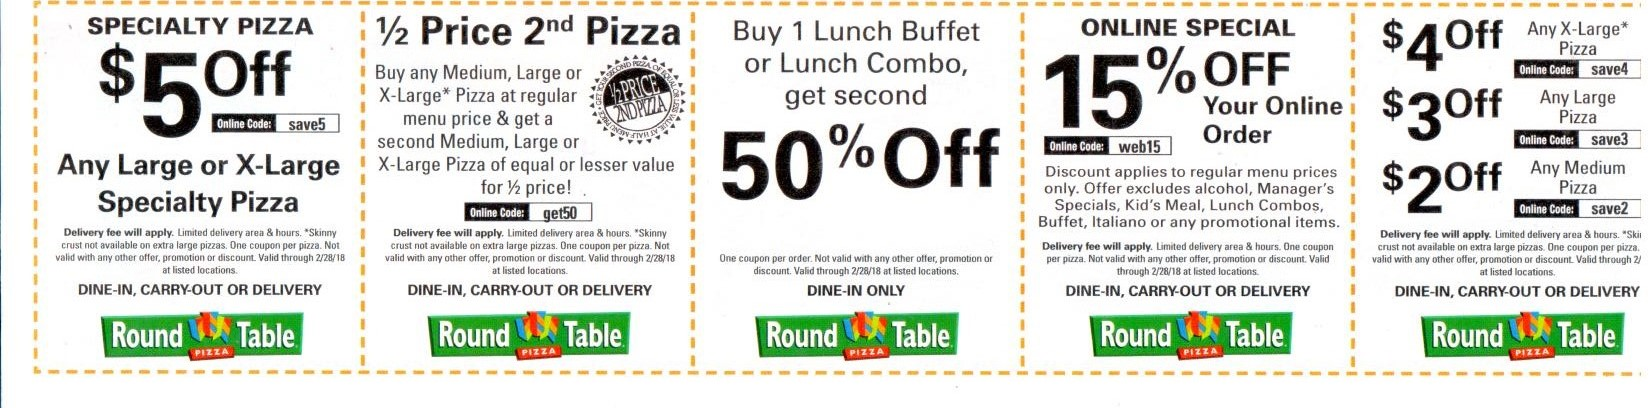 round table pizza deals today wallseat co rh wallseat co Round Table Pizza Logo Round Table Pizza Restaurant